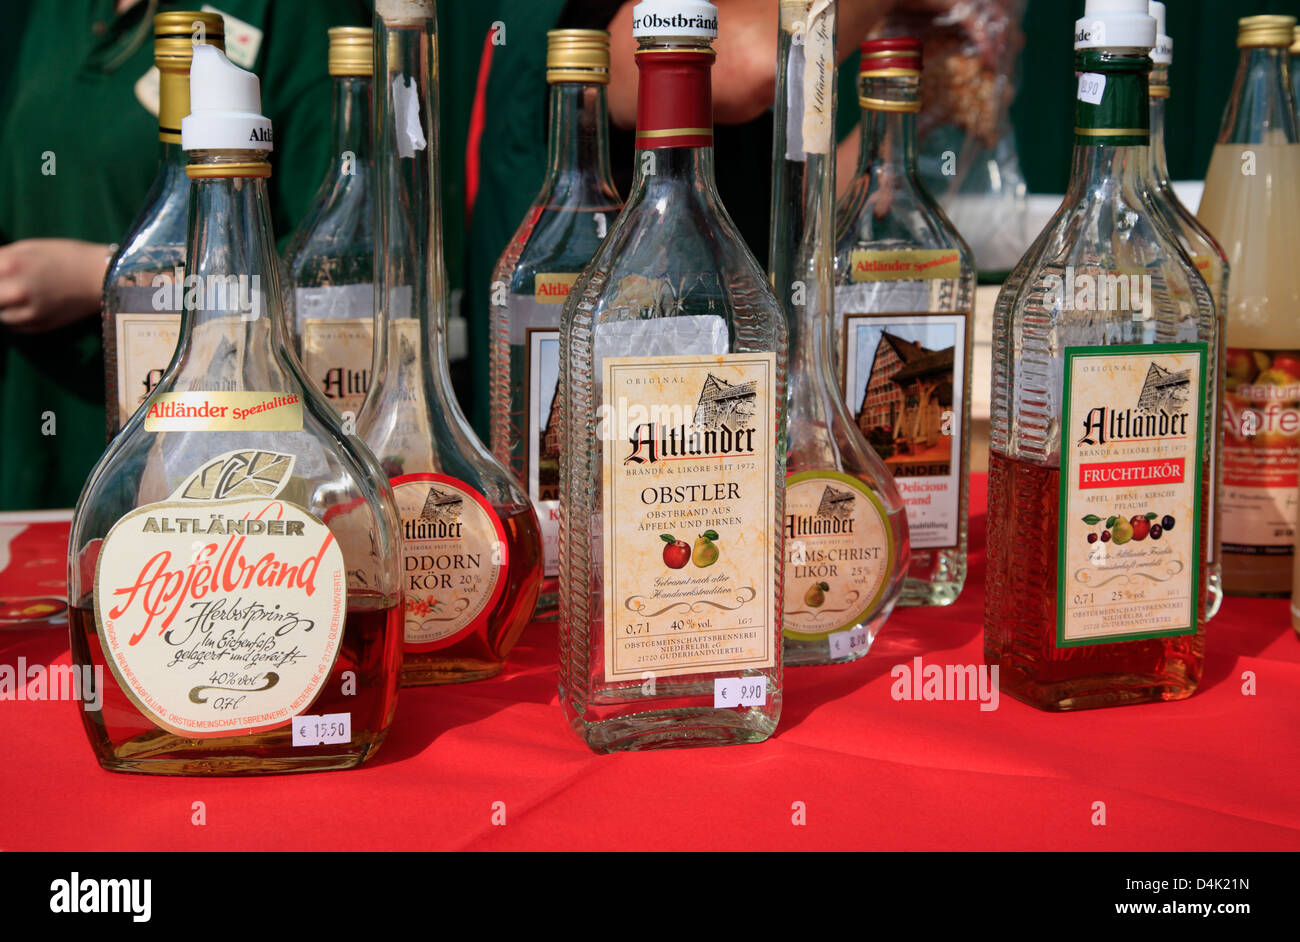 Altes Land, regional Alkoholic Products, Lower Saxony, Germany - Stock Image